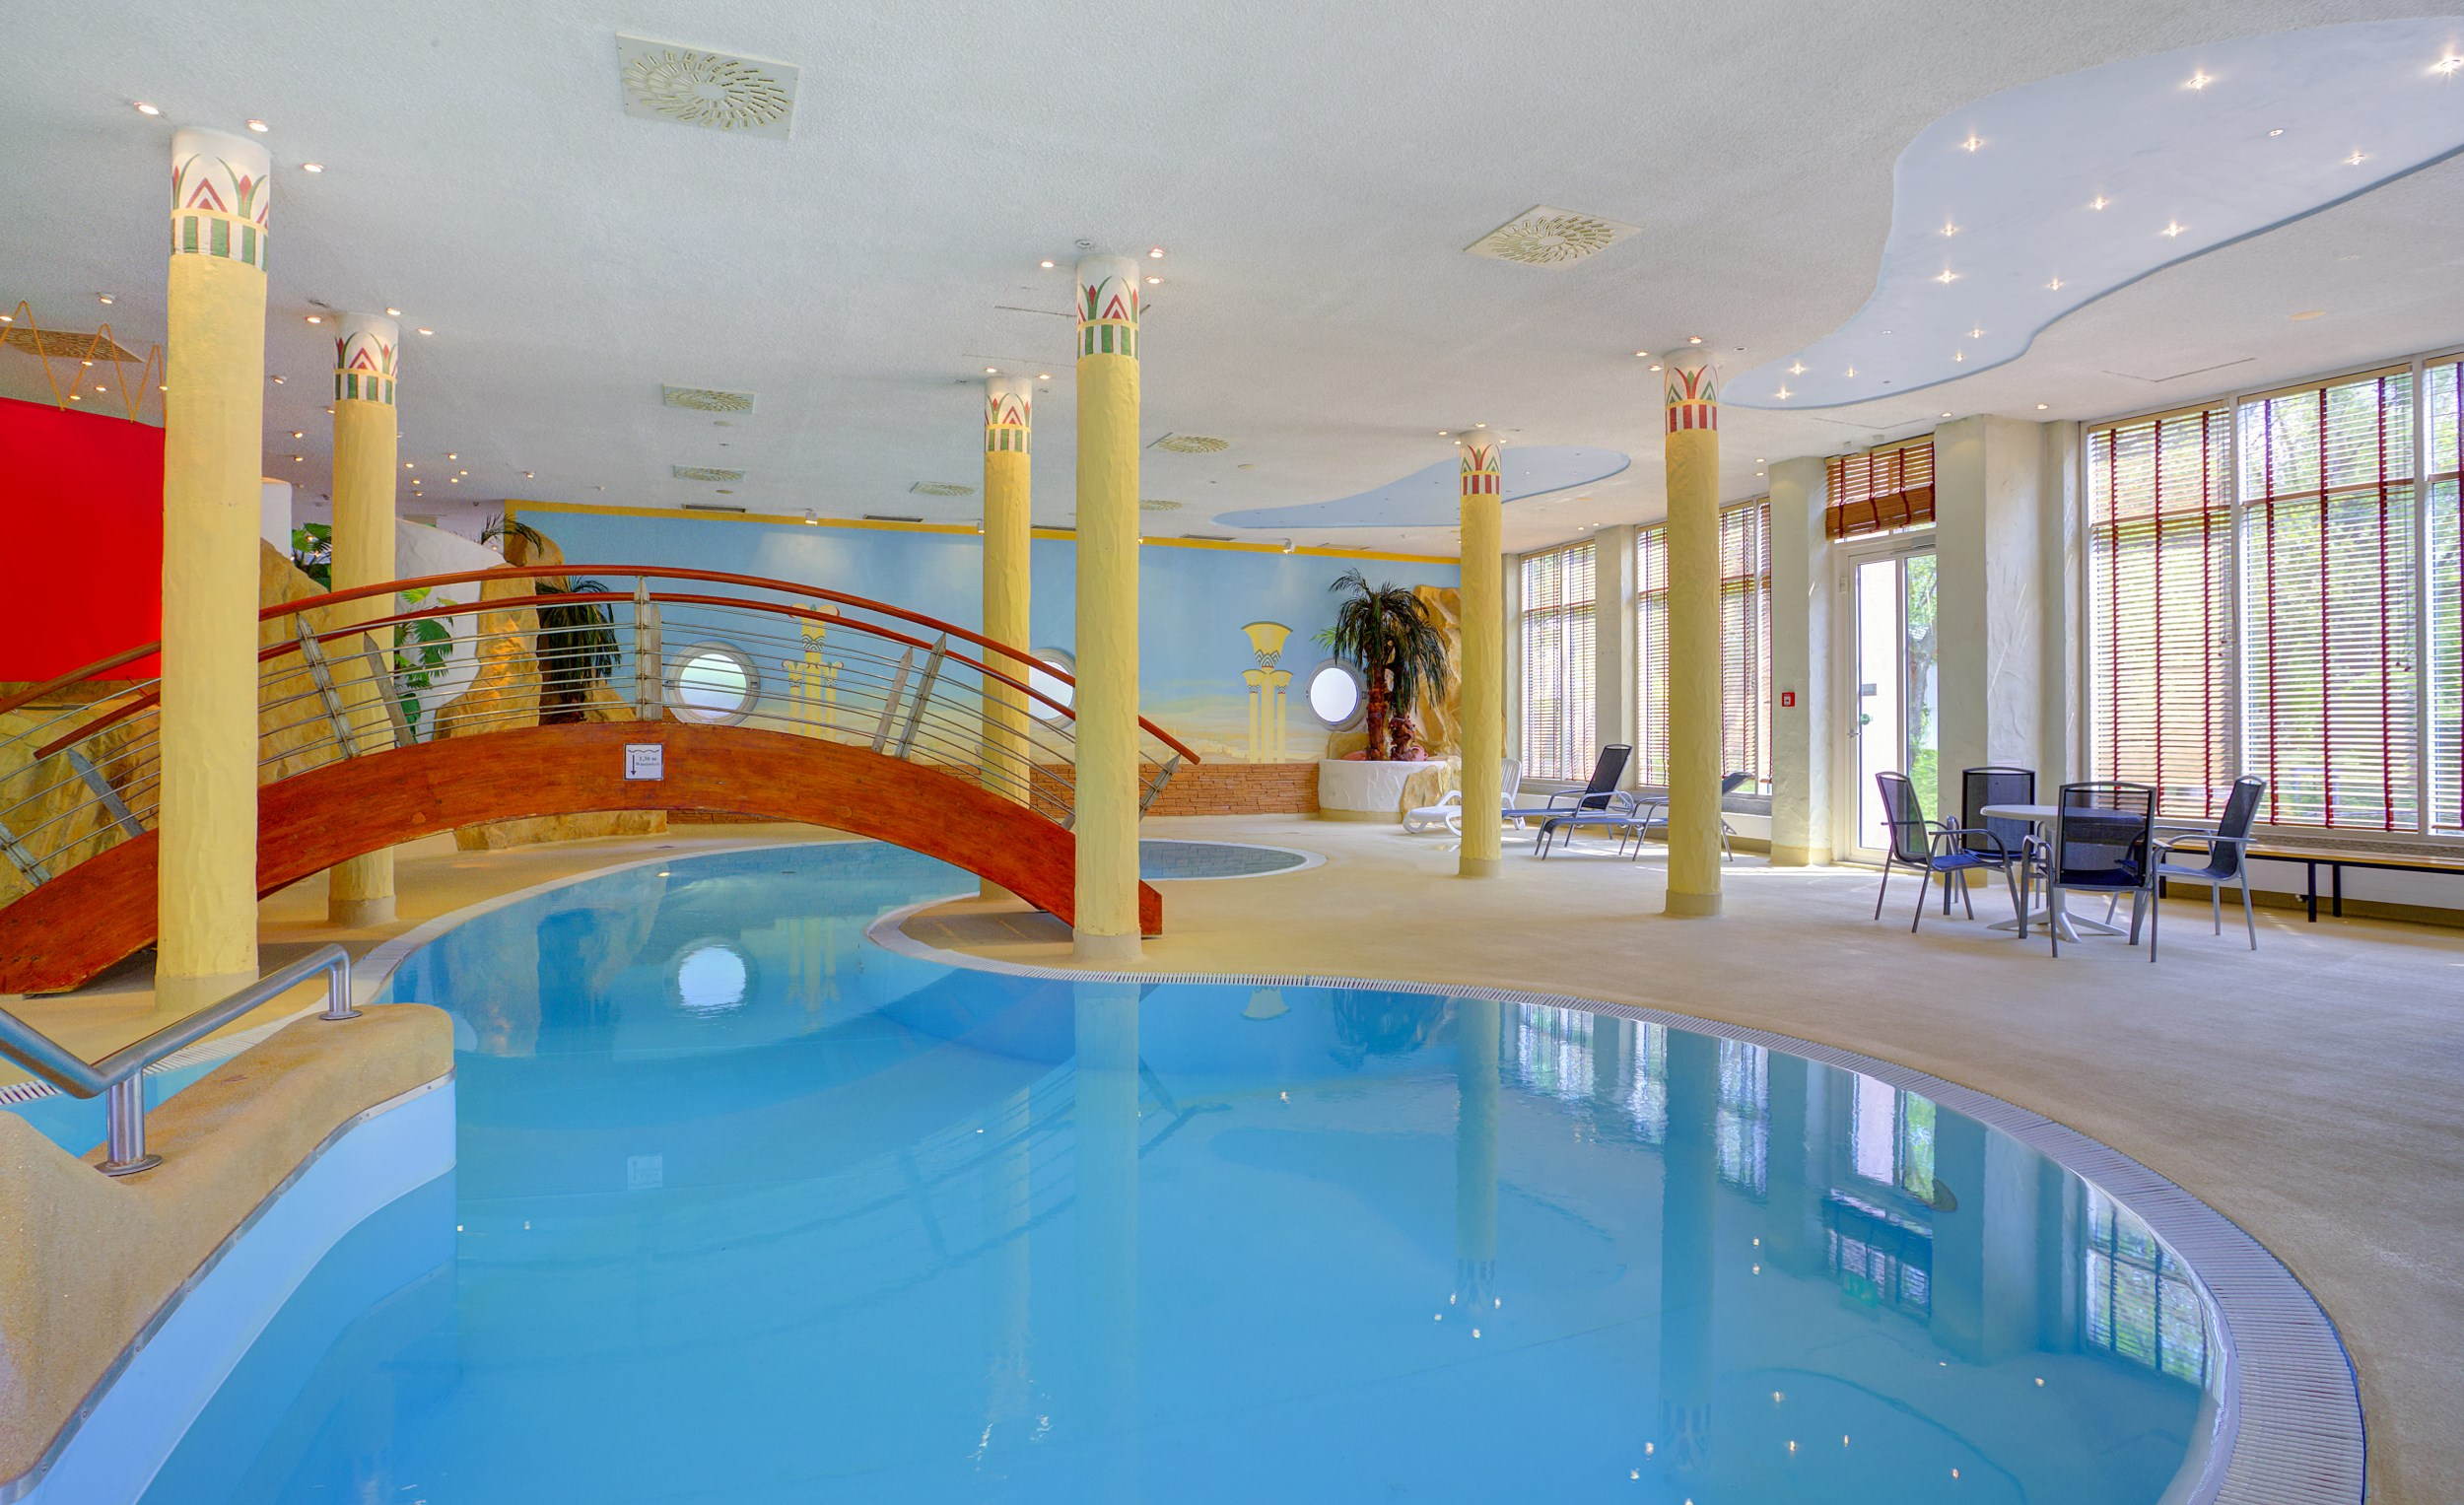 michel-hotel-magdeburg-pool2-1